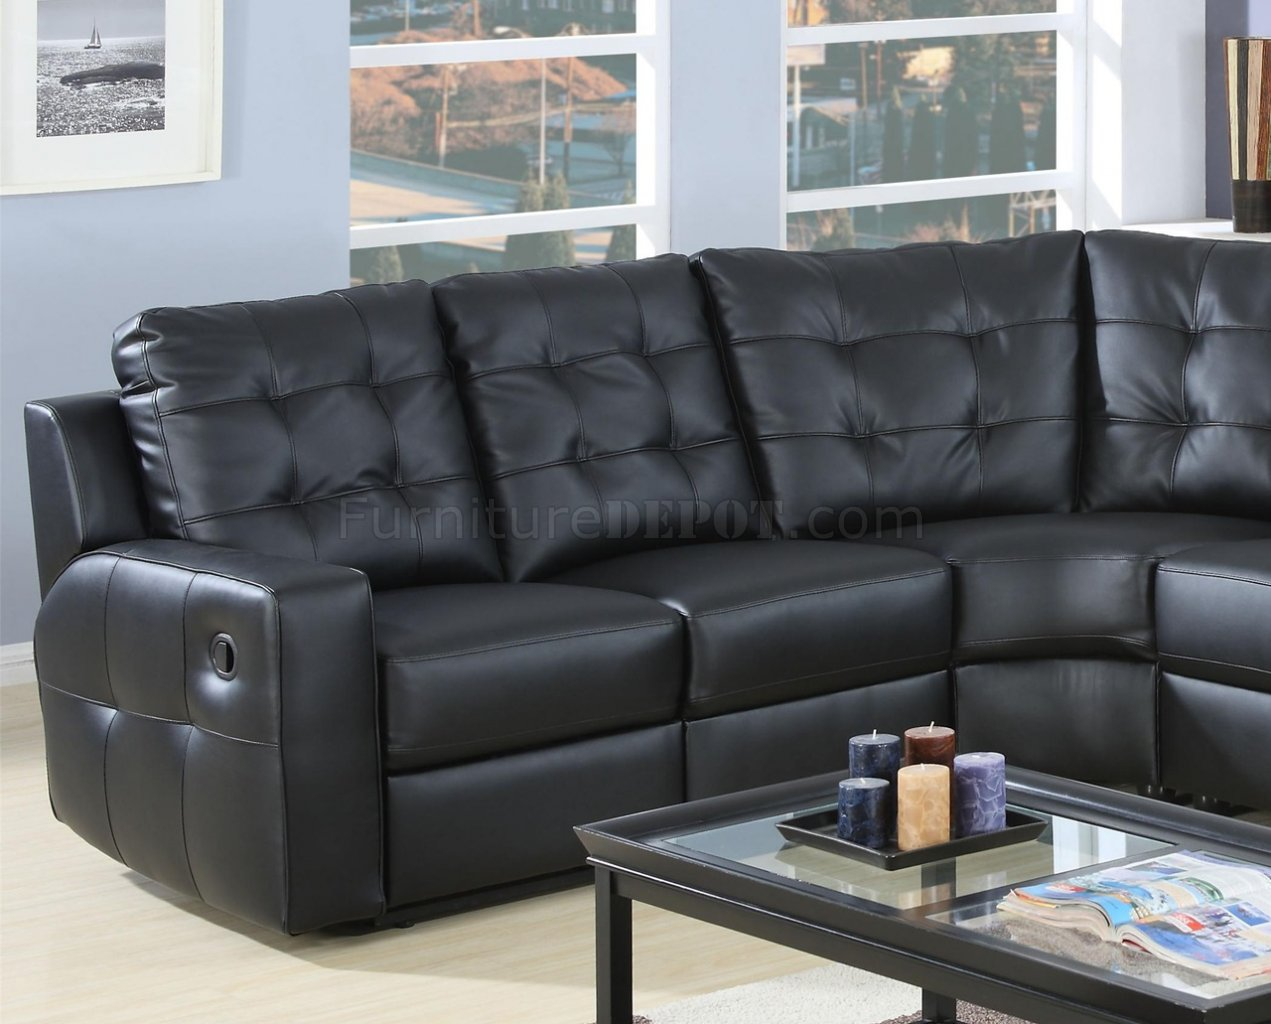 modern bonded leather sectional sofa with recliners 18 inch doll tutorial double reclining 600315 black